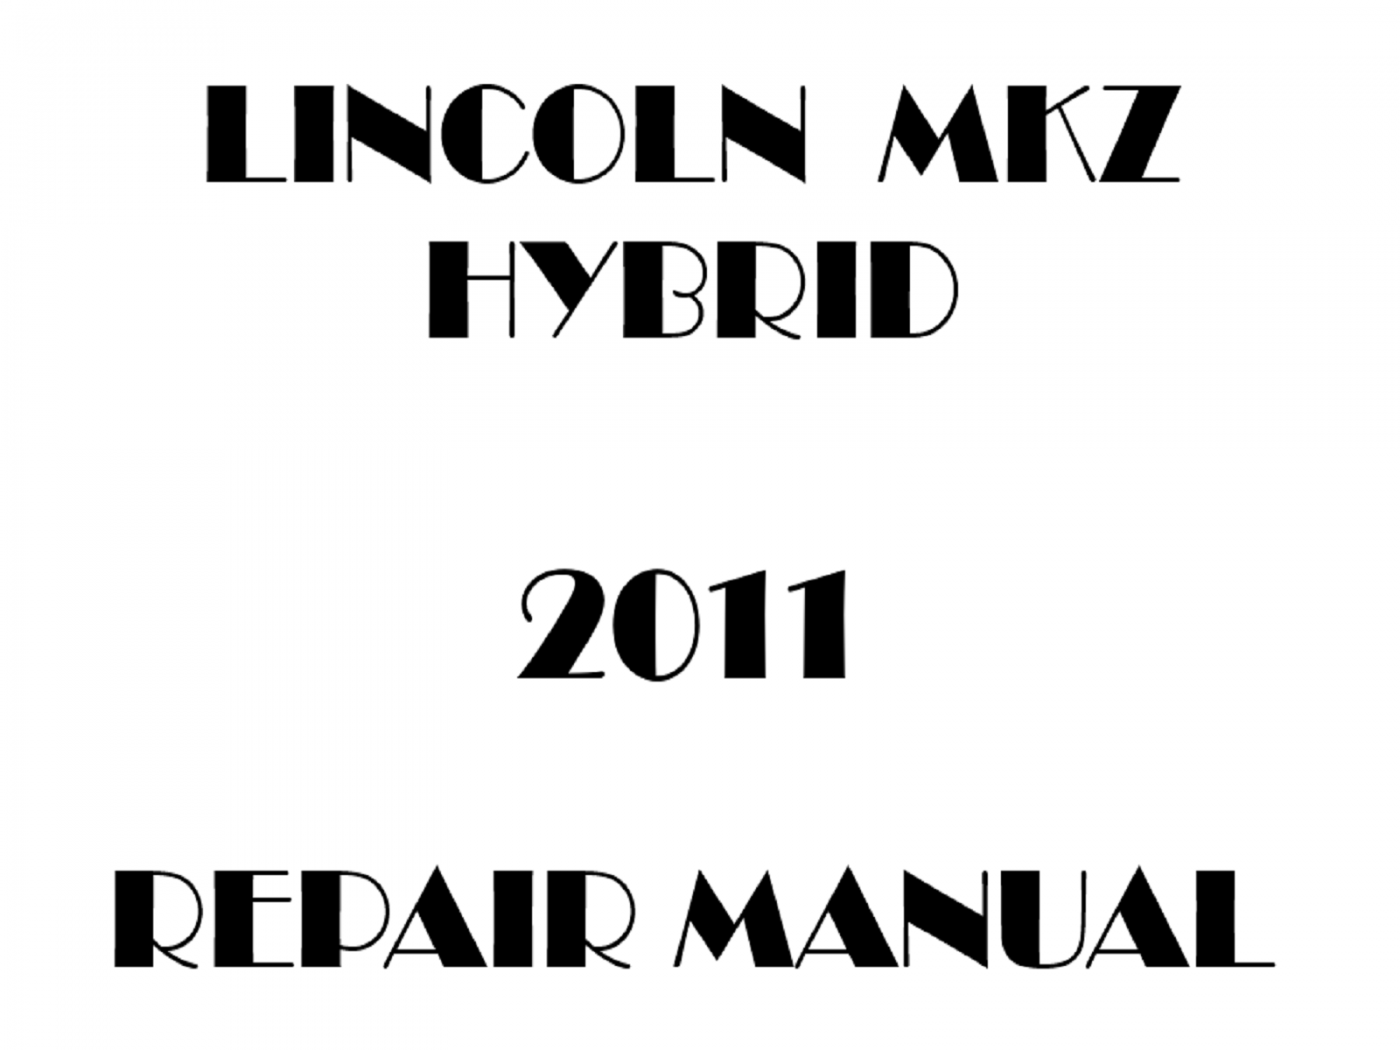 2011 Lincoln MKZ Hybrid repair manual